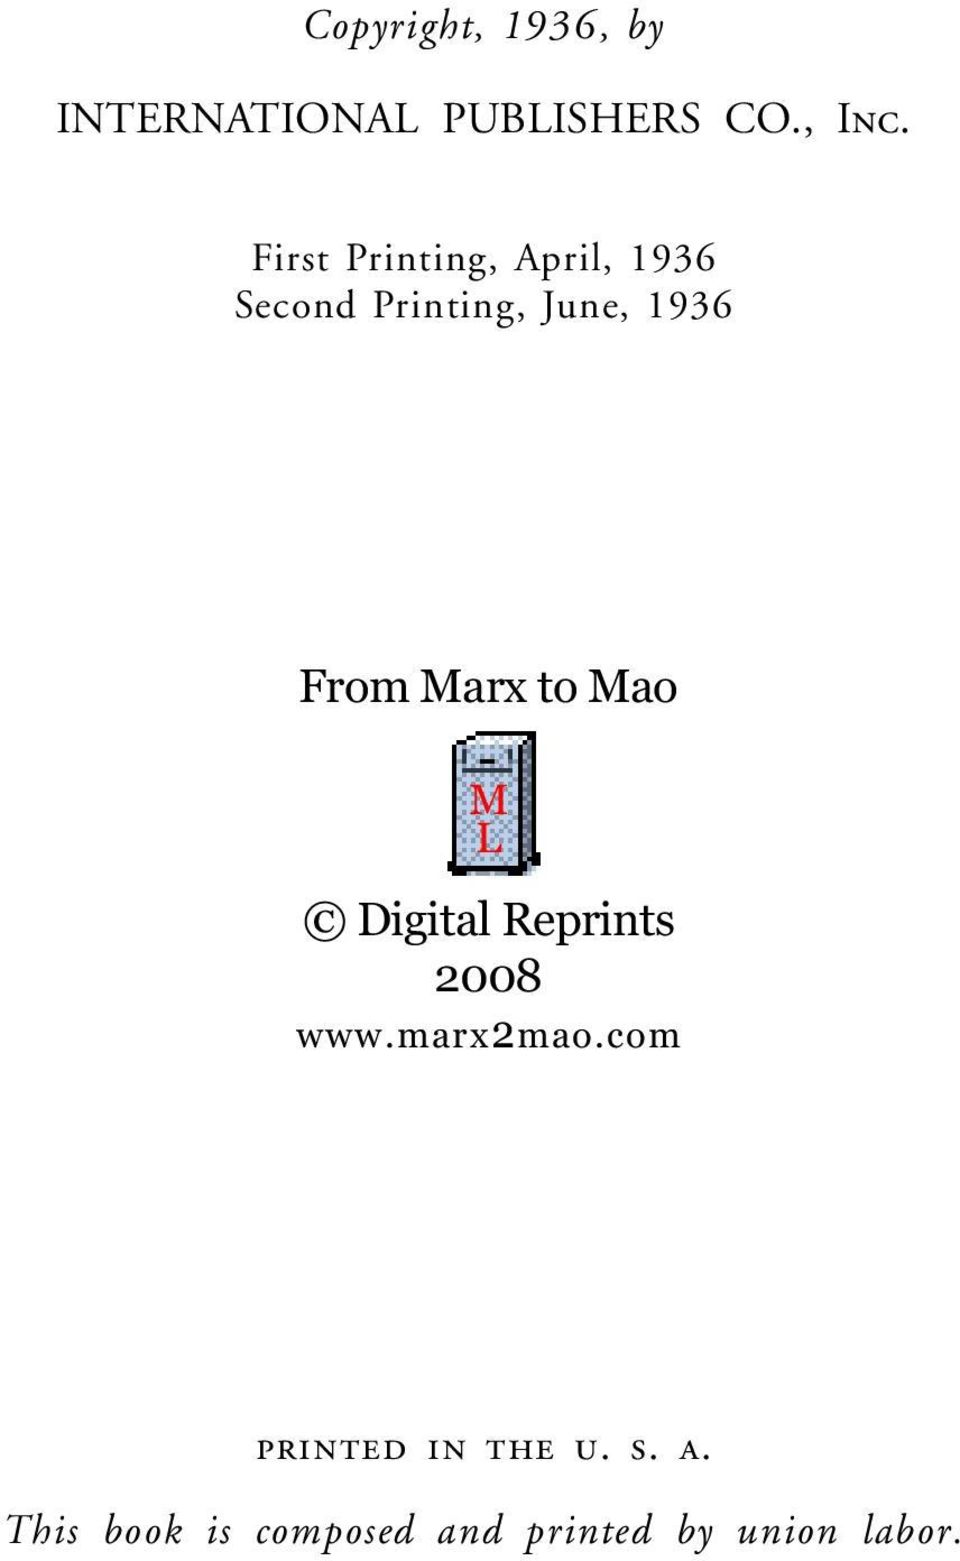 Marx to Mao M L Digital Reprints 2008 www.marx2mao.